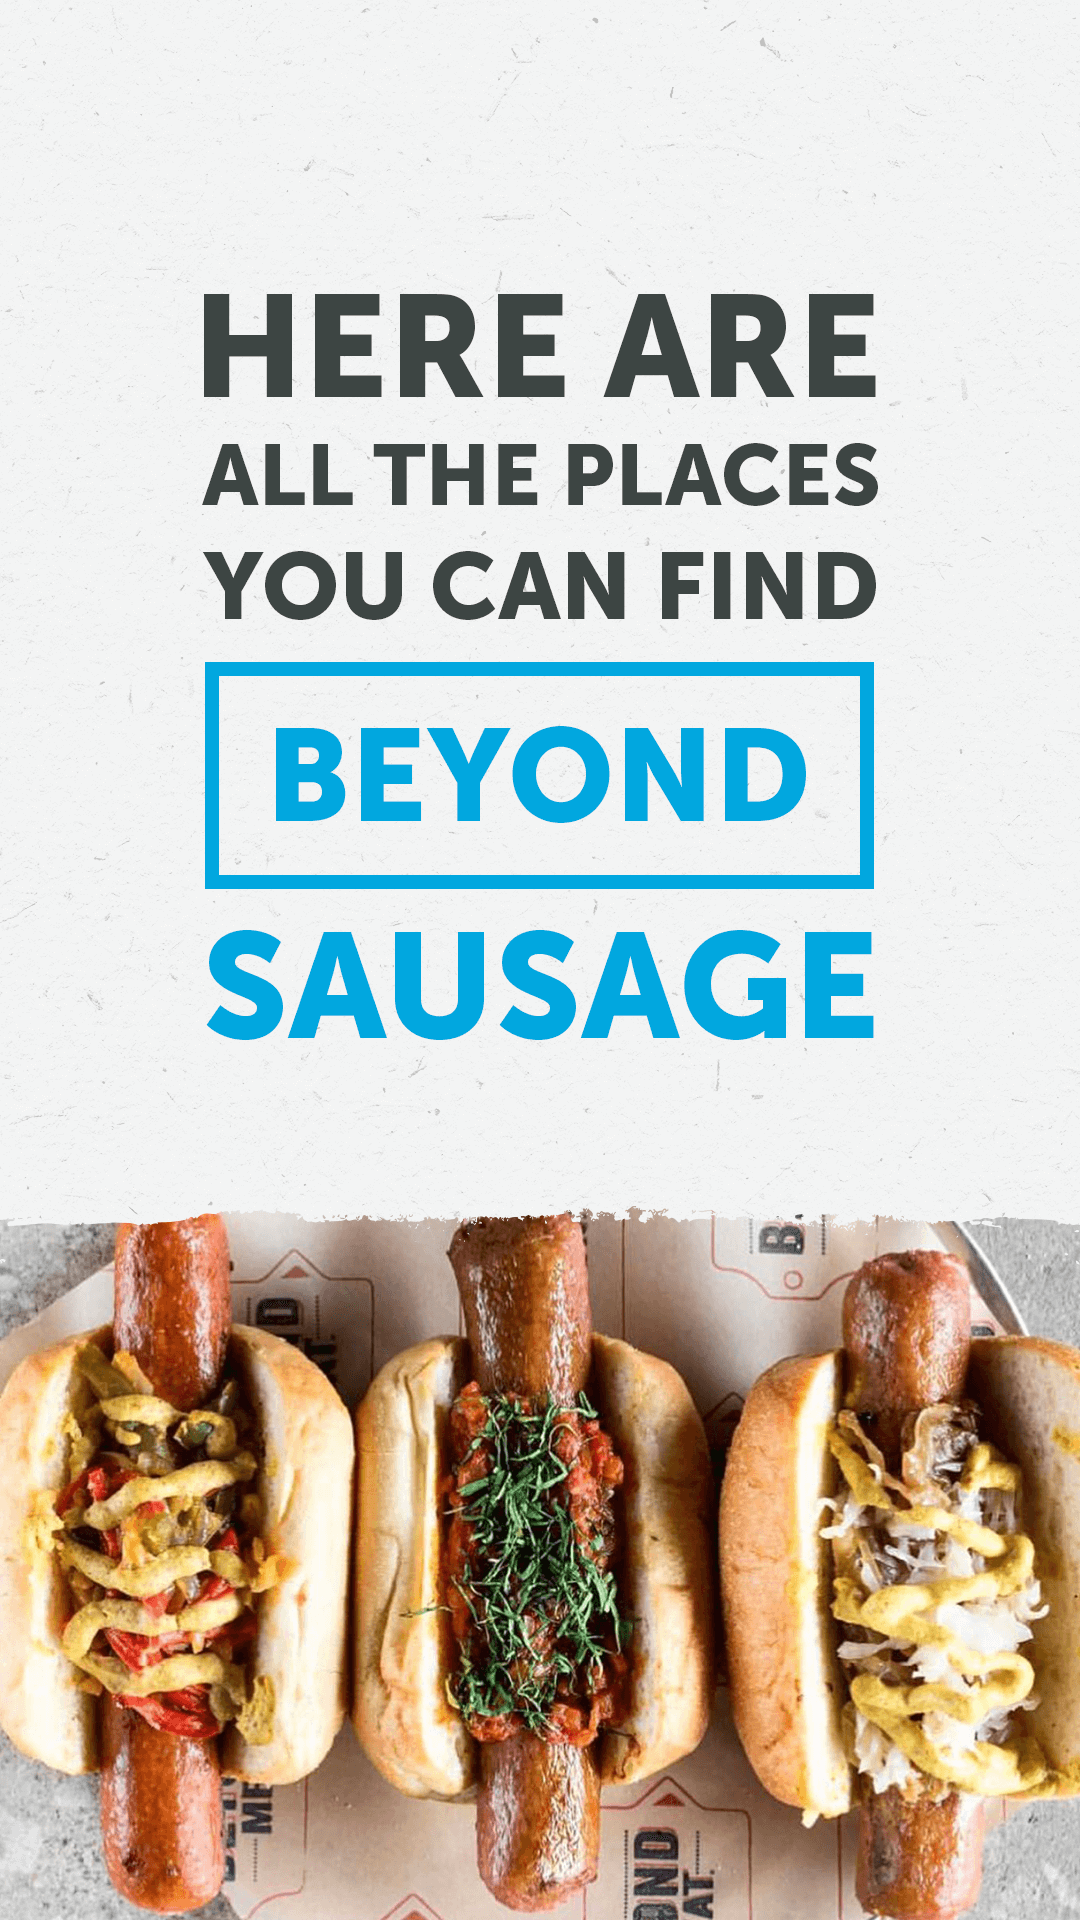 Here Are All the Places You Can Find the Beyond Sausage